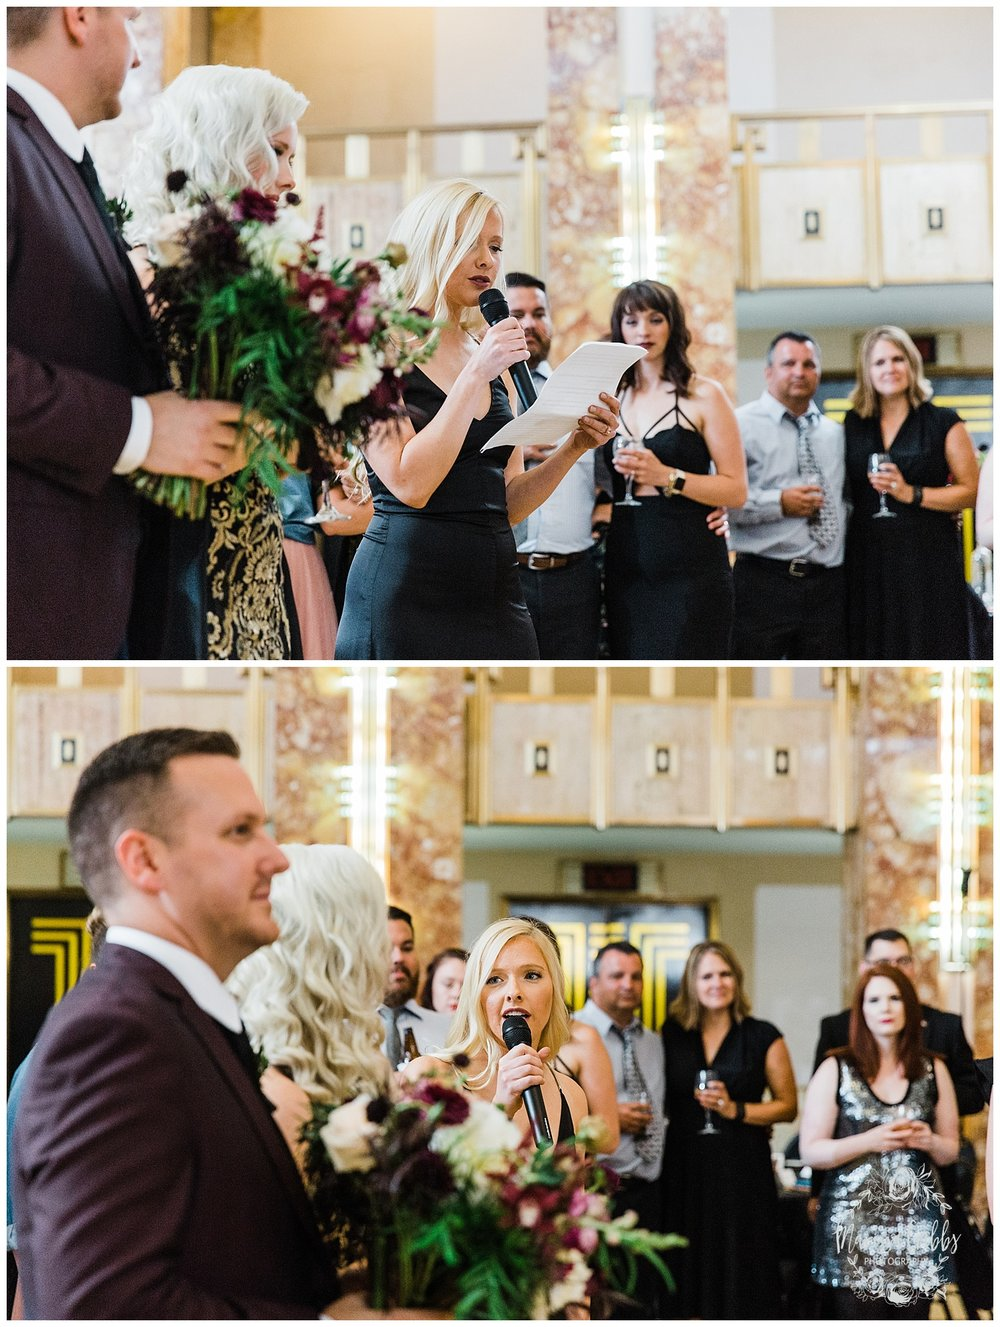 RYSER VOW RENEWAL | LITTLE THEATRE | KC WEDDING PHOTOGRAPHER | MARISSA CRIBBS PHOTOGRAPHY_1508.jpg